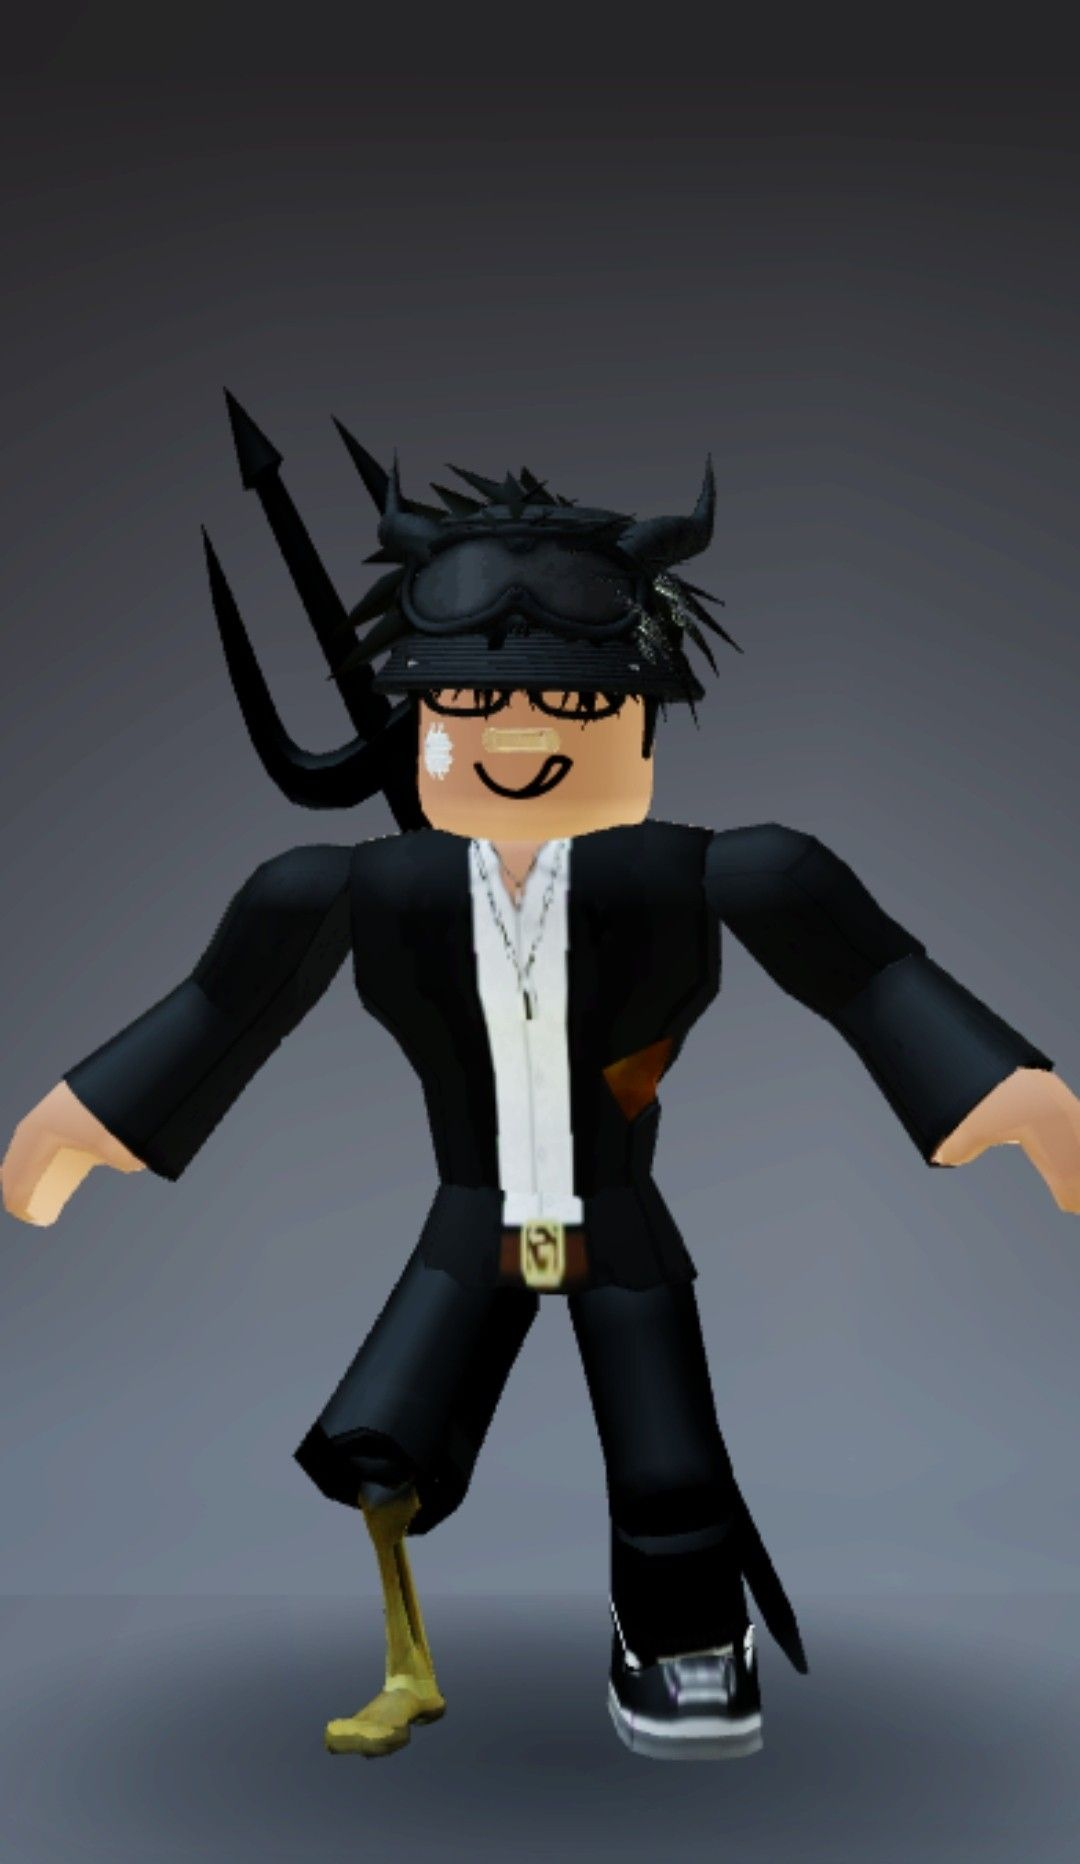 Aesthetic Roblox Avatars Boy : aesthetic, roblox, avatars, Roblox, Slender, Hoodie, Roblox,, Avatars